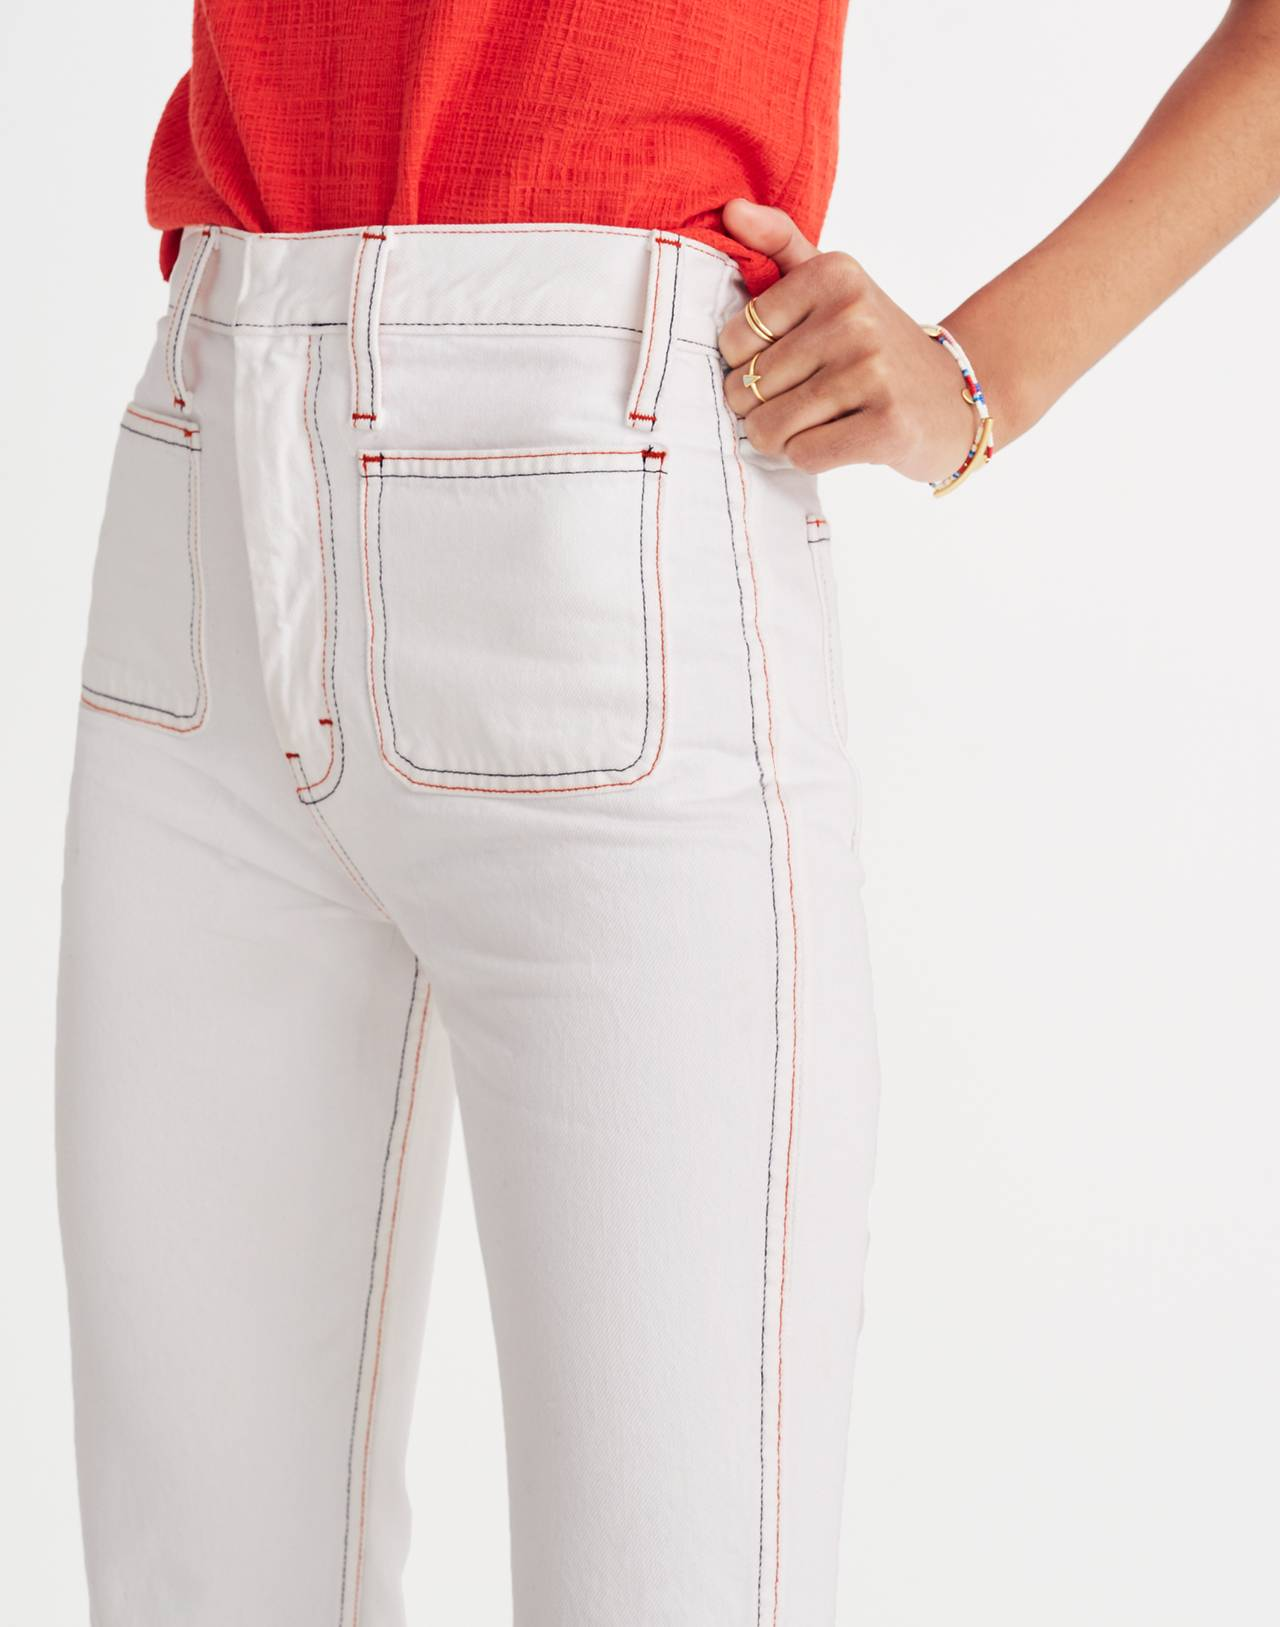 Rigid Demi Boot Crop Jeans: Red White and Blue Edition in armstrong wash image 2